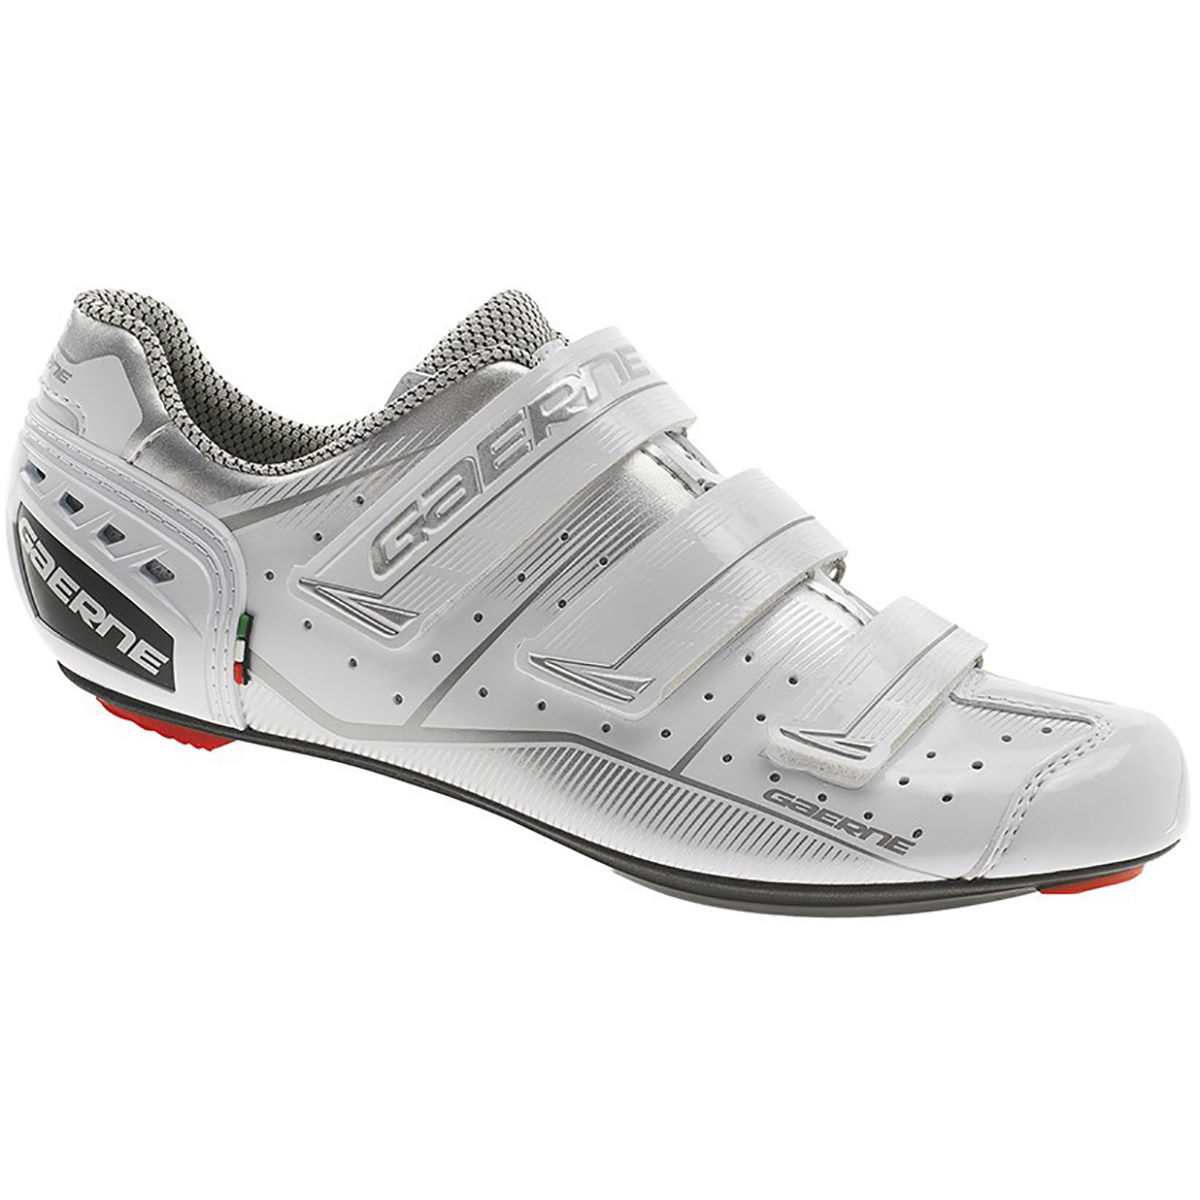 Clearance Cycling Shoes Uk